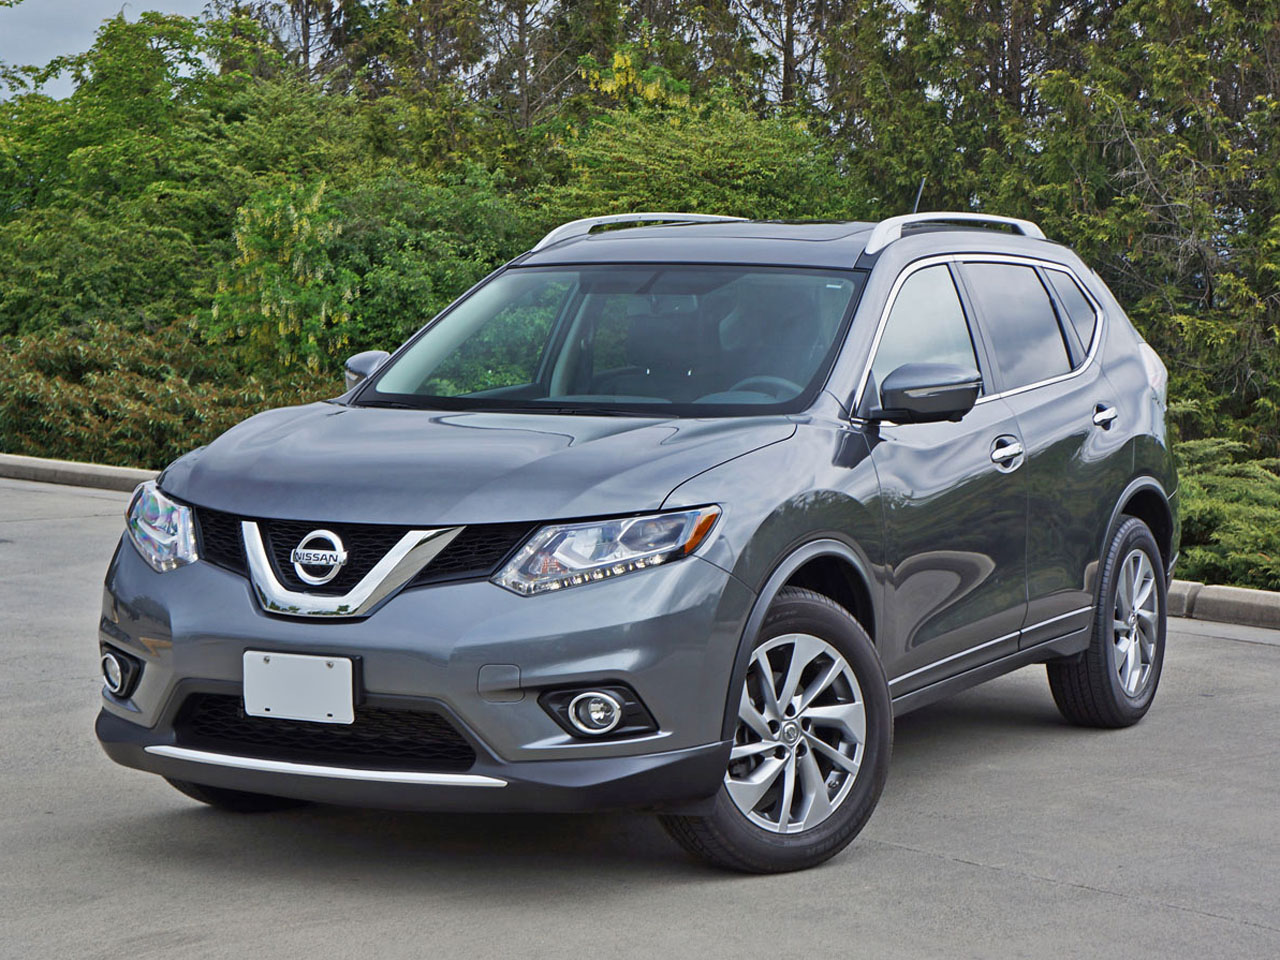 2015 nissan rogue sl awd road test review carcostcanada. Black Bedroom Furniture Sets. Home Design Ideas